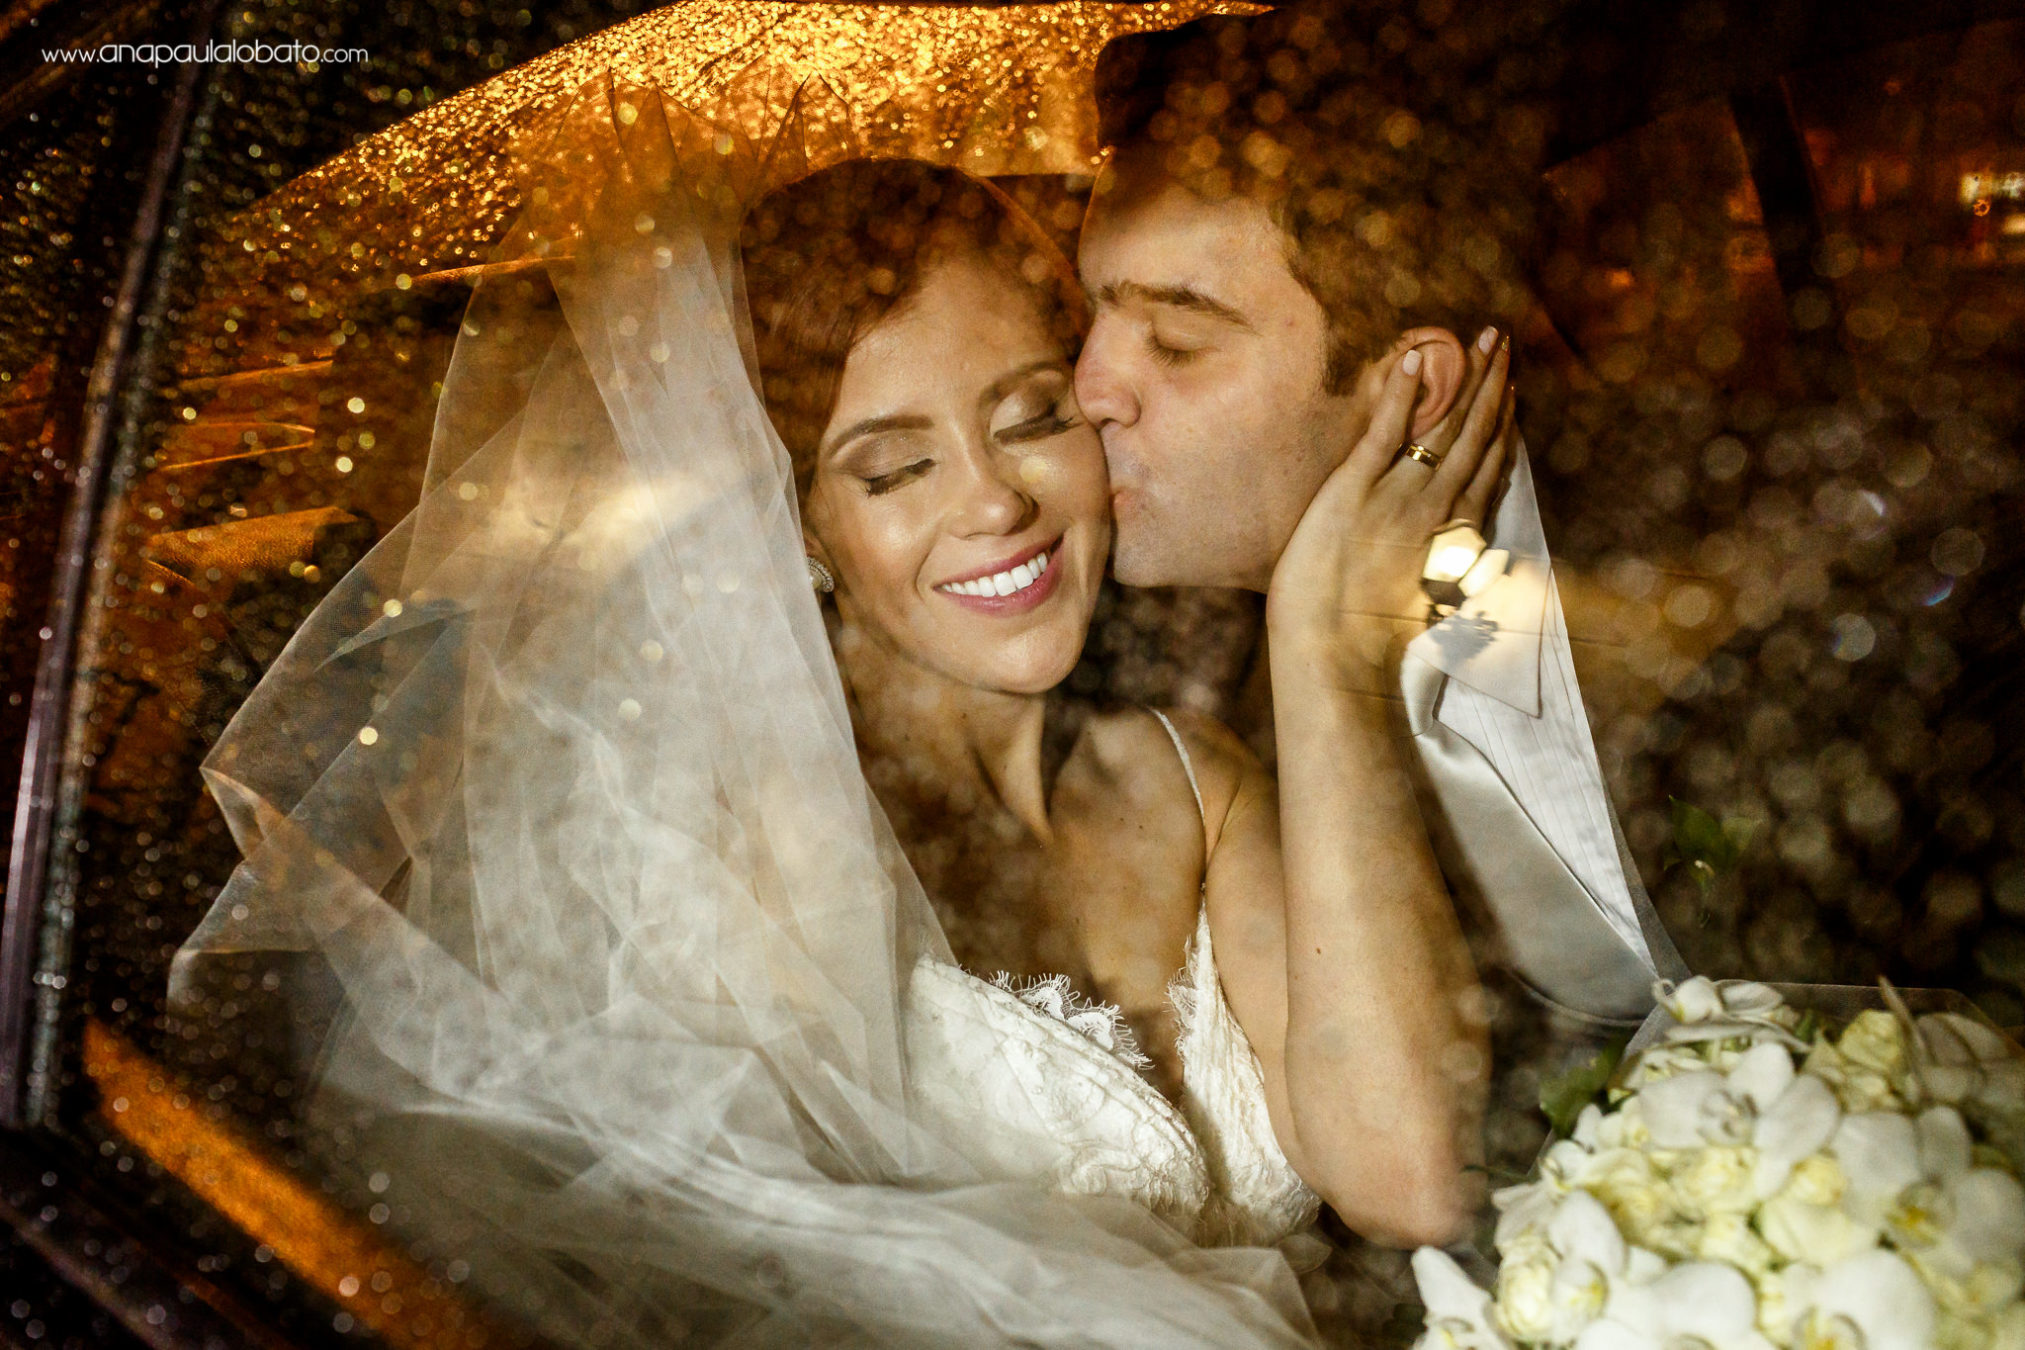 Just married couple kisses inside the car with water drops